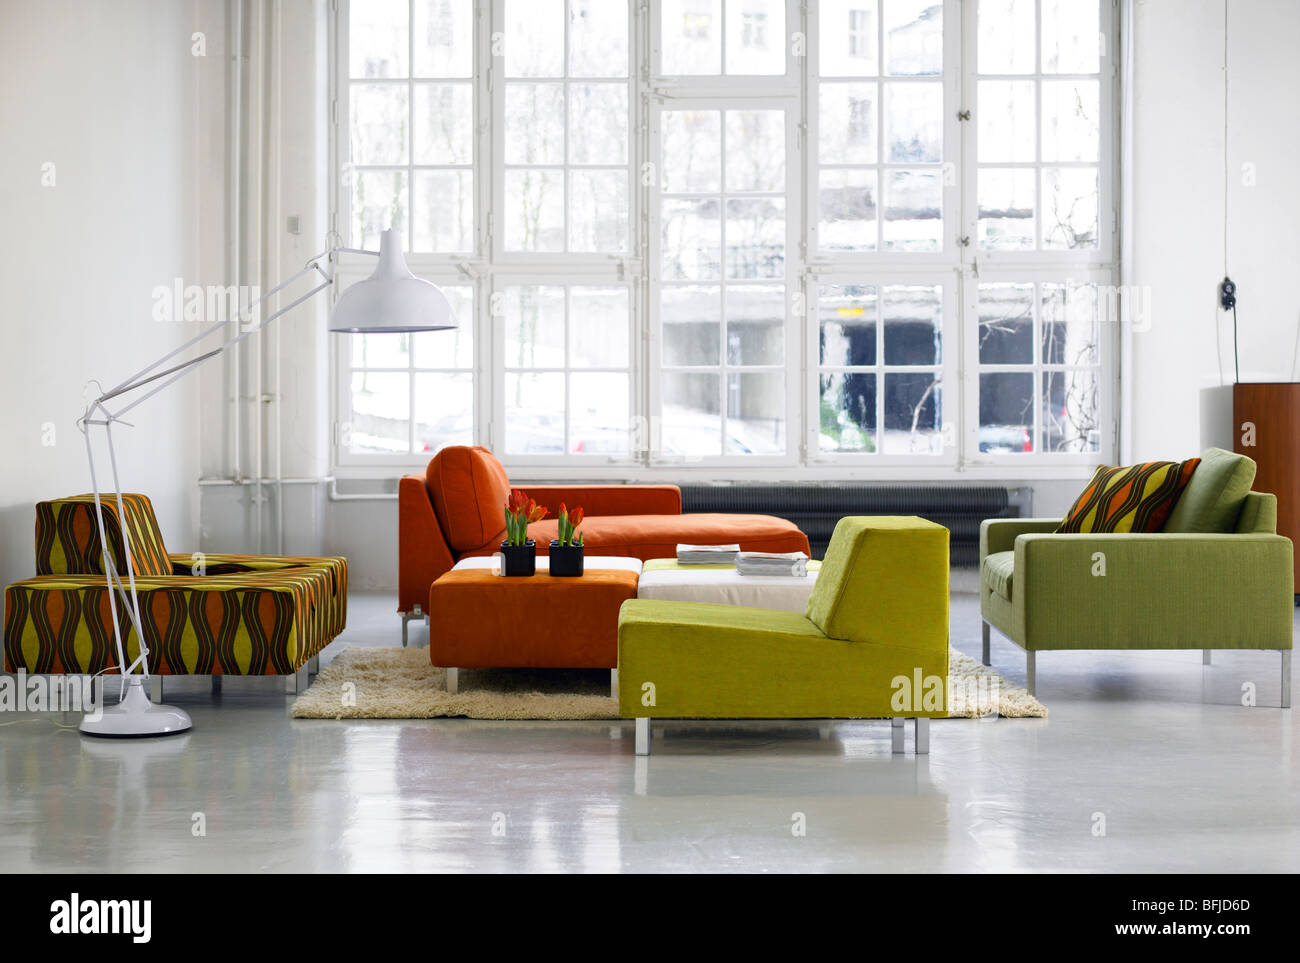 A group of sofa and armchairs, Sweden. - Stock Image